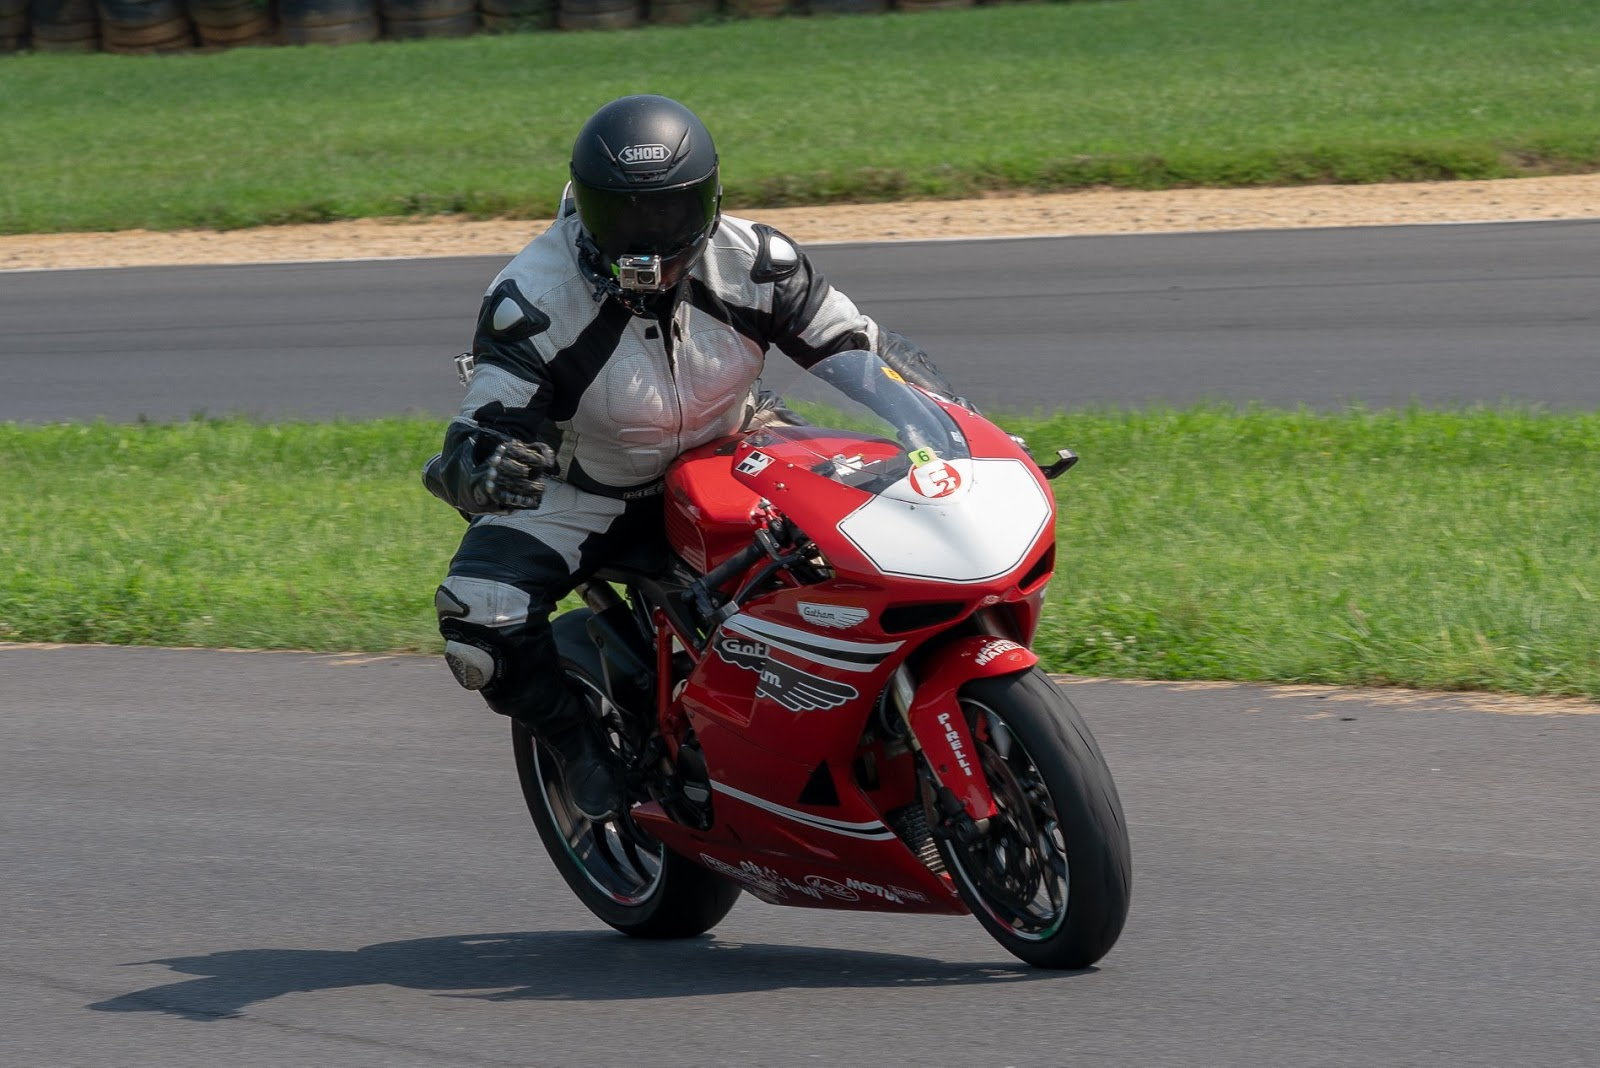 Tigh Loughhead Track Bike at Summit Point Motorsports Park in West Virgina